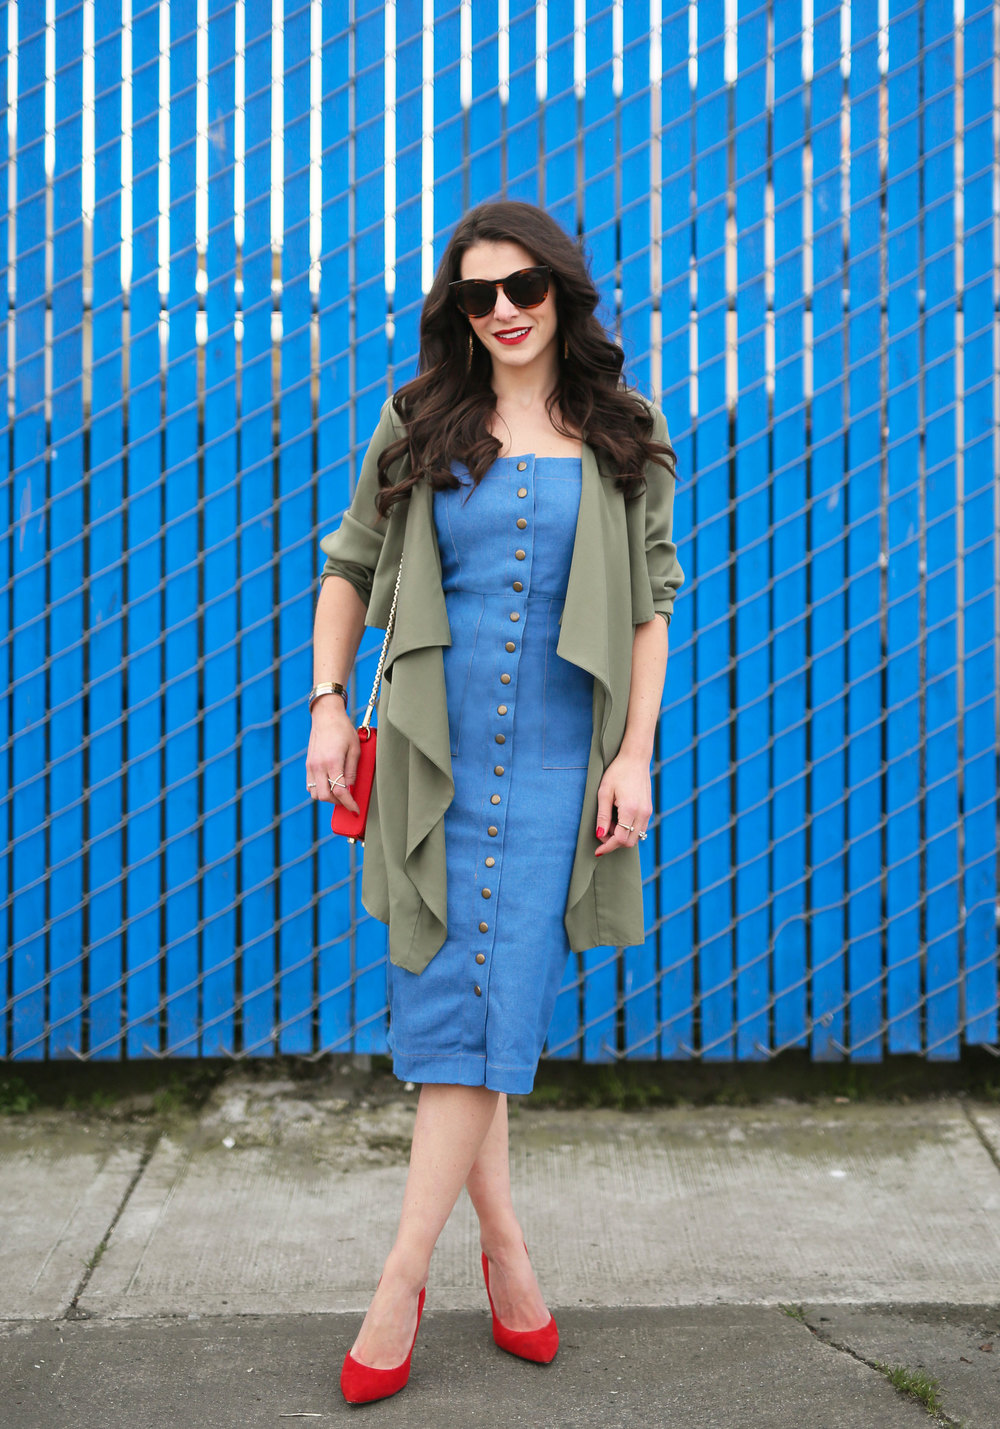 Clayton Candace Dress, Denim Midi Dress, Rebecca Minkoff Avery Crossbody, Red Bag and Shoes, Karen Walker look-alike sunglasses, Drape Front Jacket